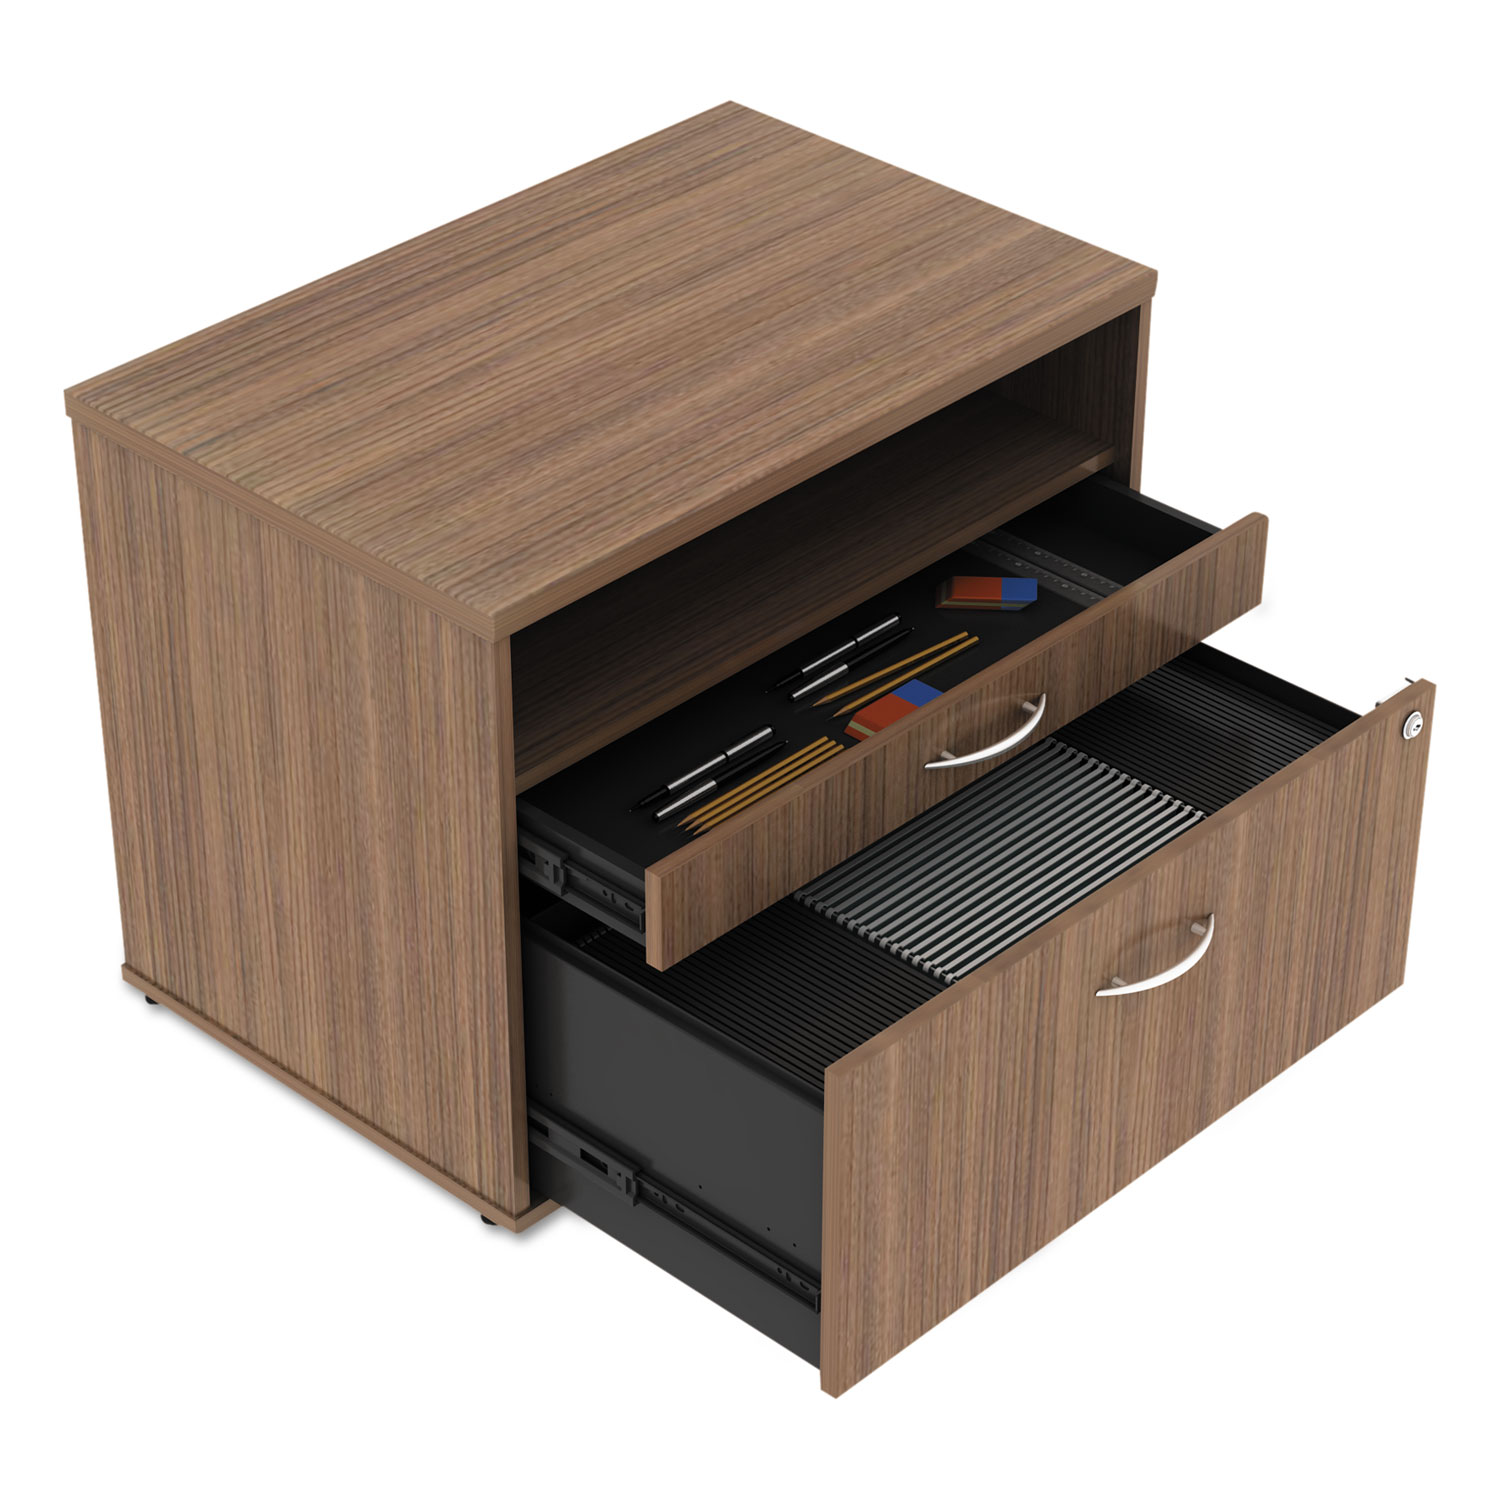 Alera Open Office Series Low File Cabinet Credenza, 29 1/2x19 1/8x22 7/8,Walnut